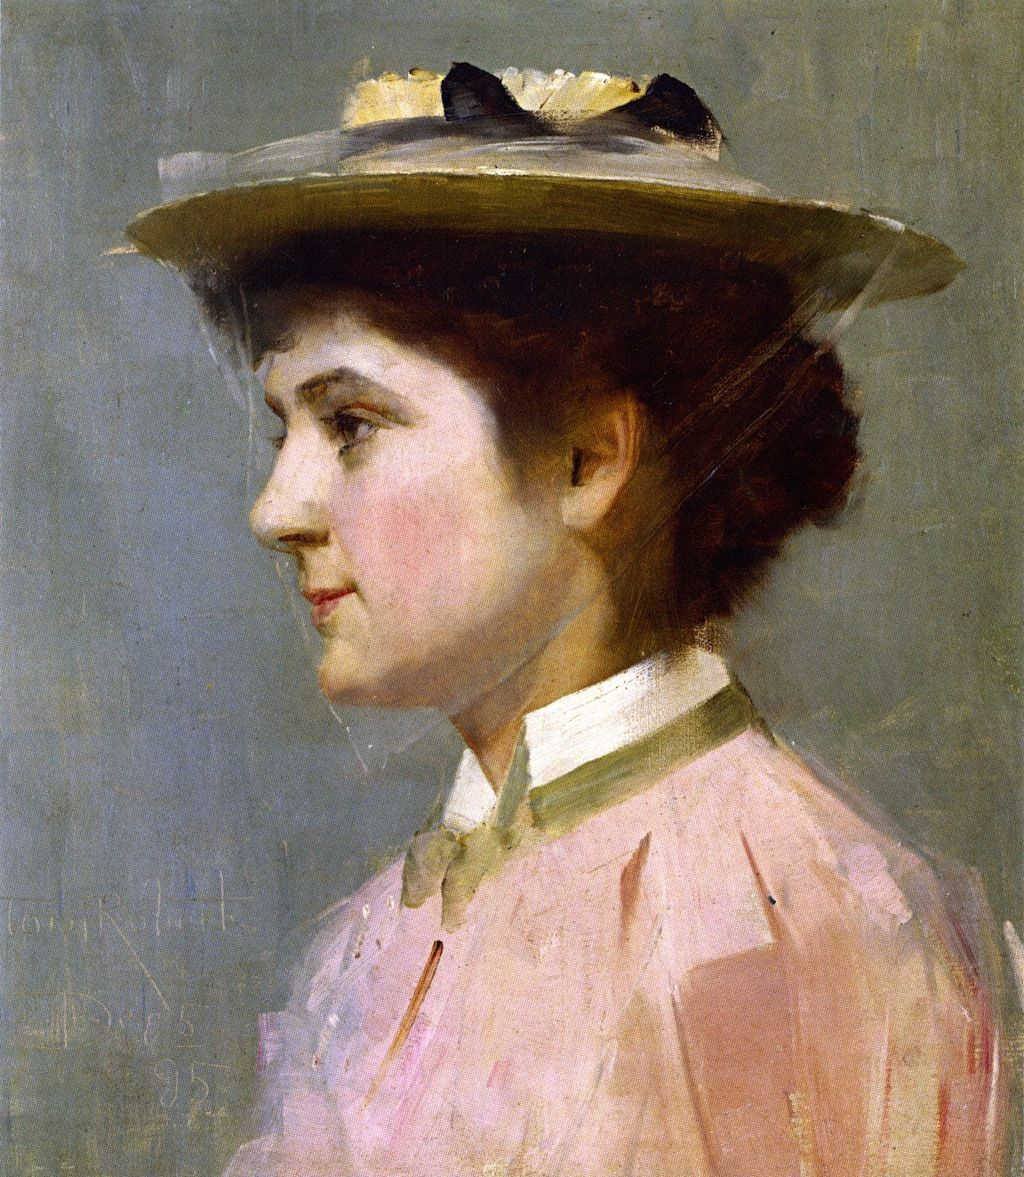 Pin By Isobel On Isobel May Ledden In 2019: 1895 - Miss Isobel McDonald - Tom Roberts